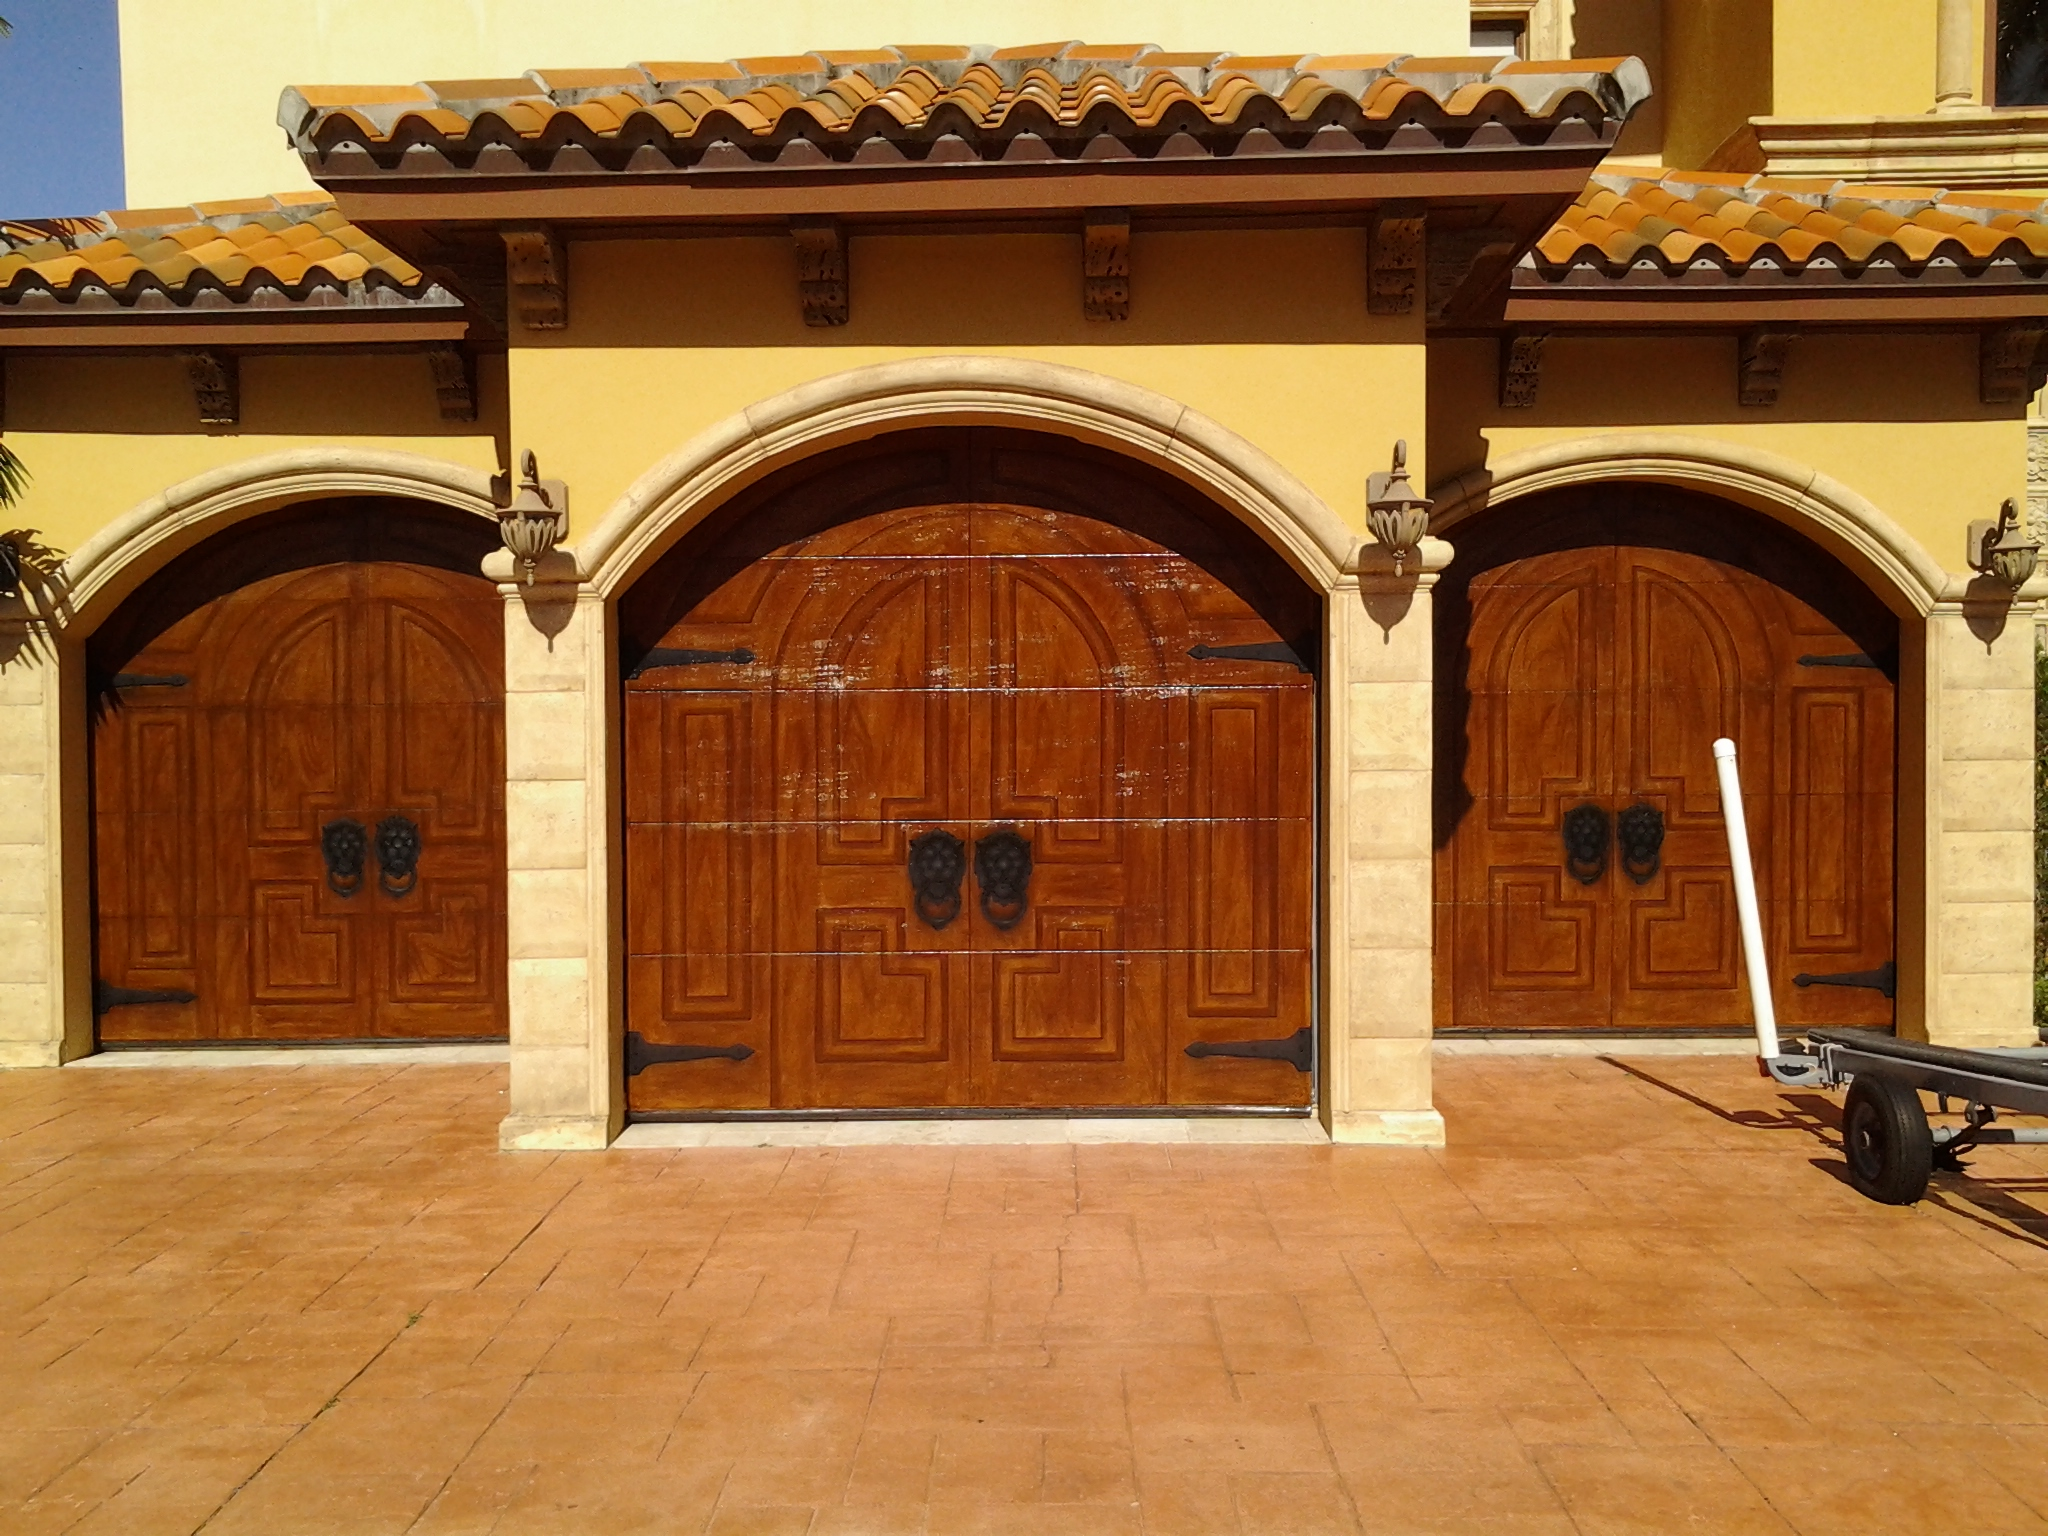 1536 #78330B Garage Door Costco With Solid Hard Wood Material Plus Good Door  pic Garage Doors At Costco 36912048